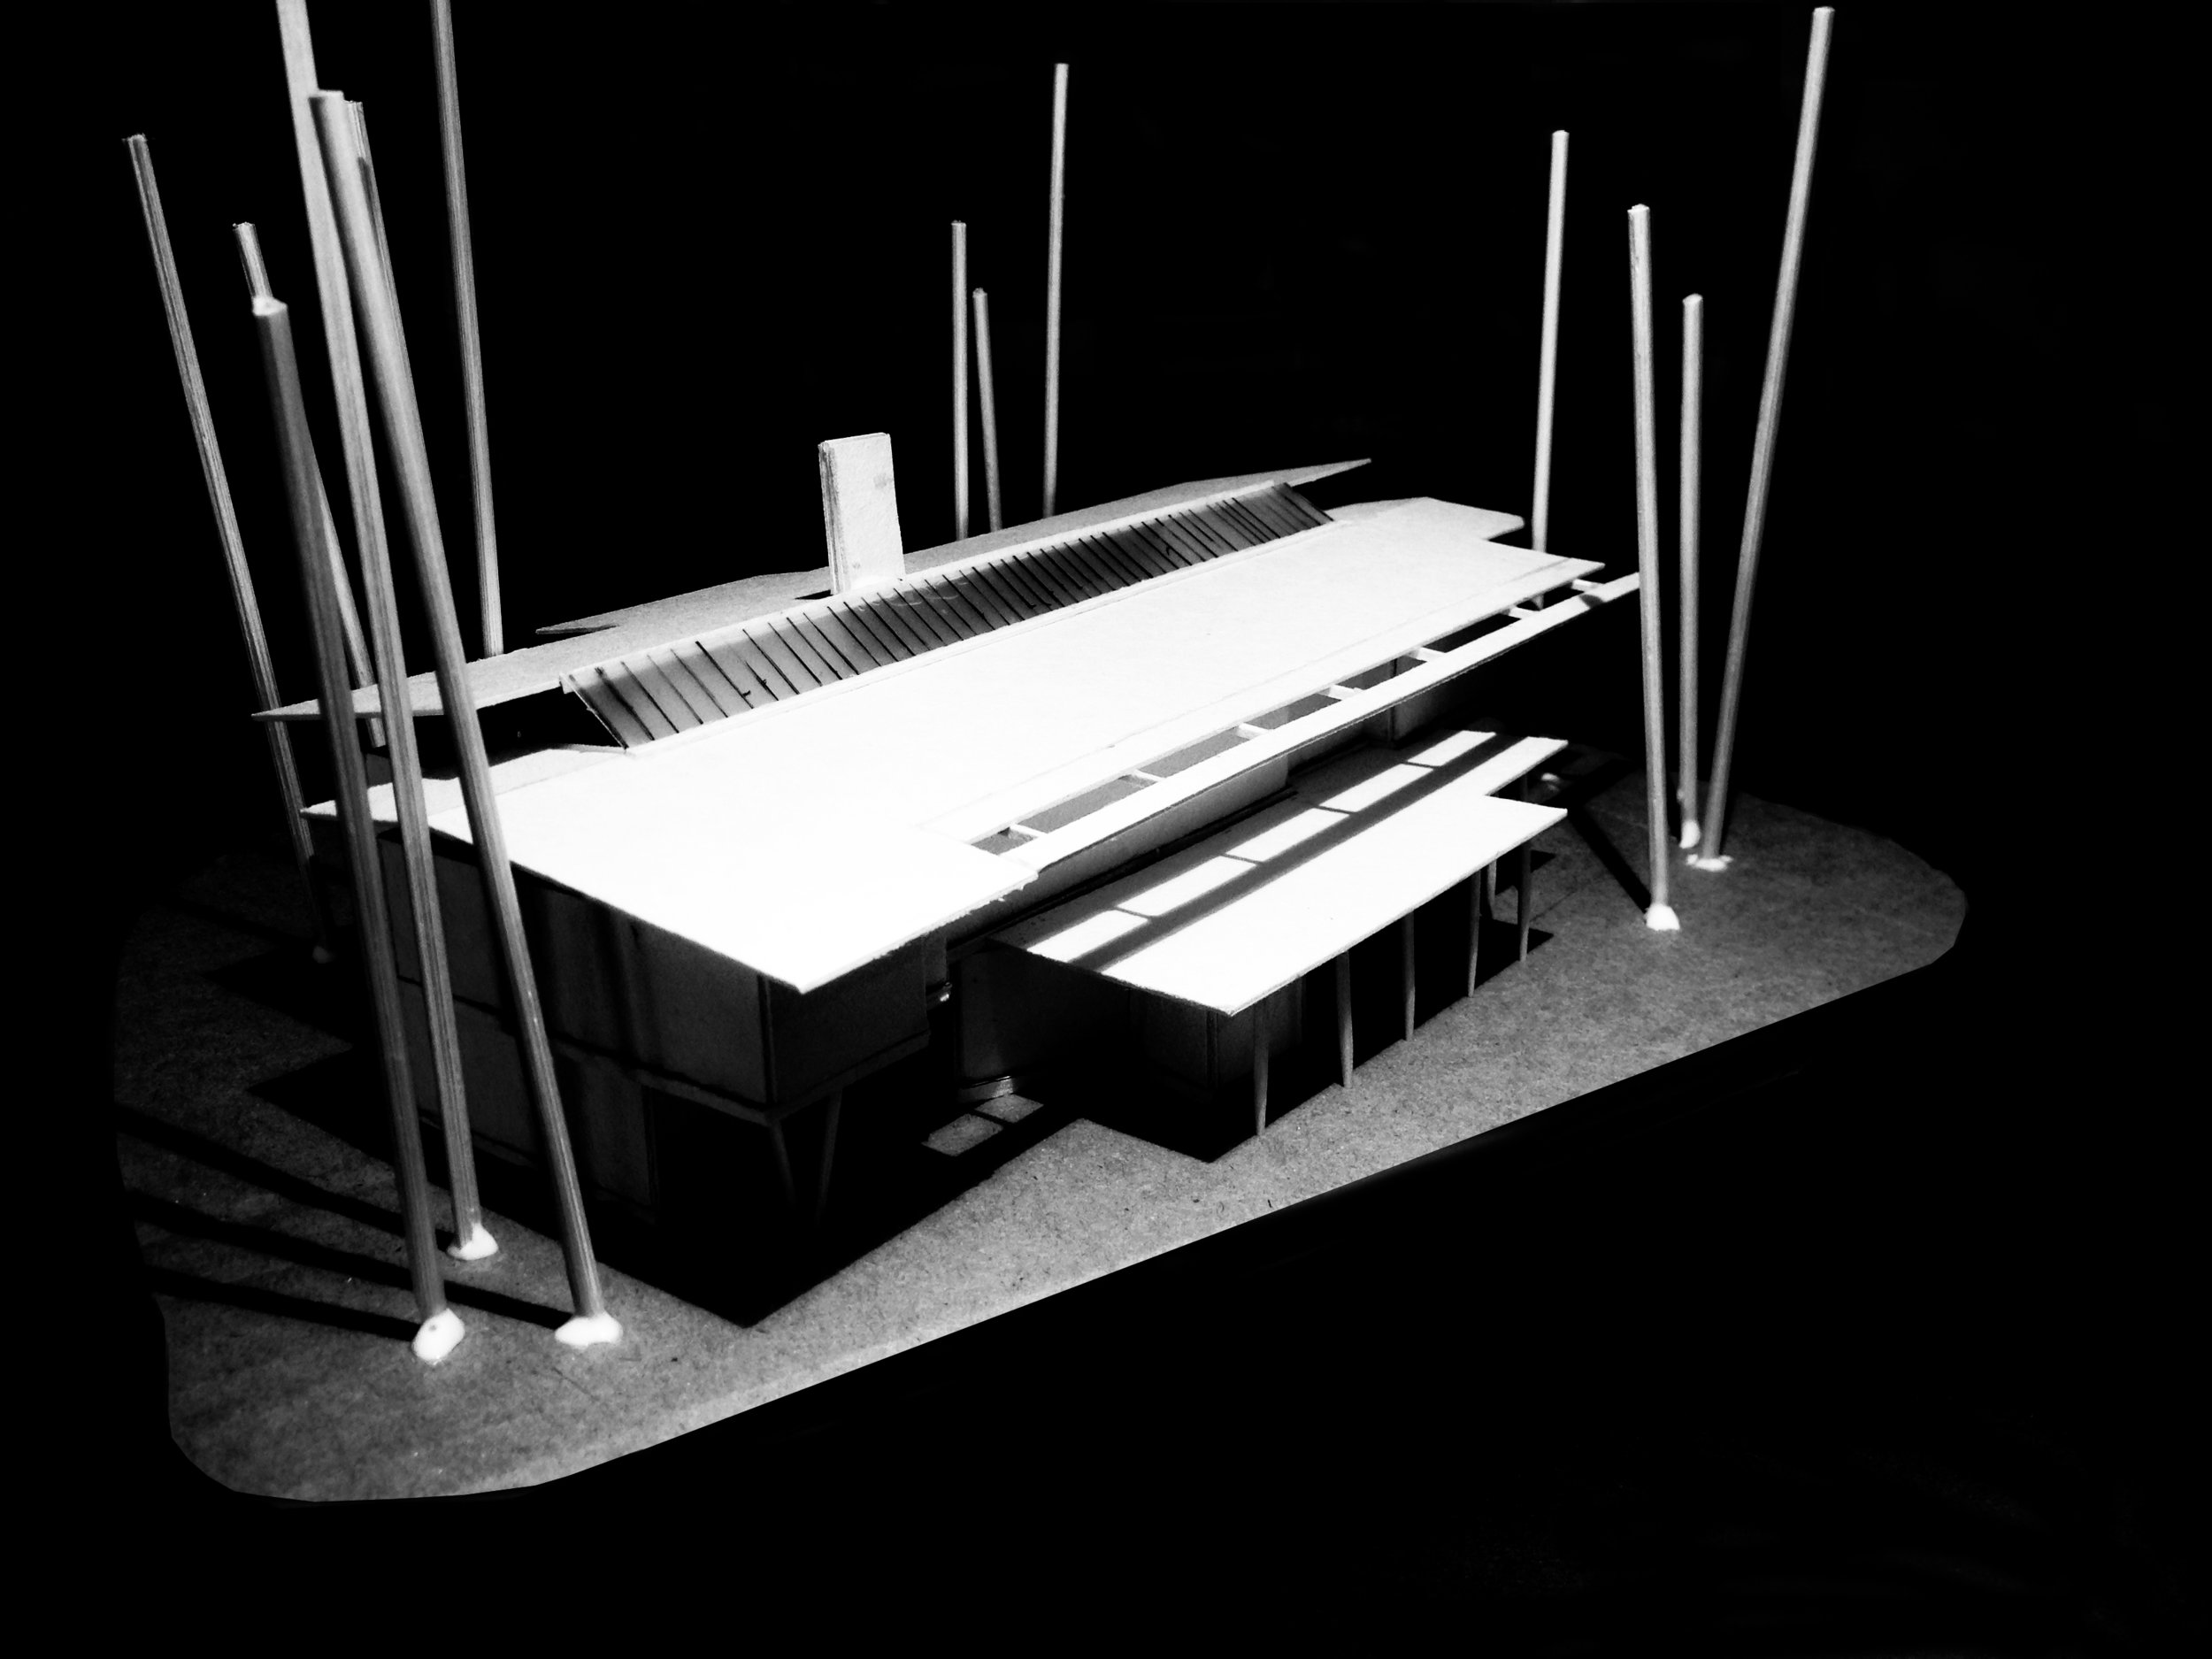 2 Storey Building design model - Front Looking From South to North